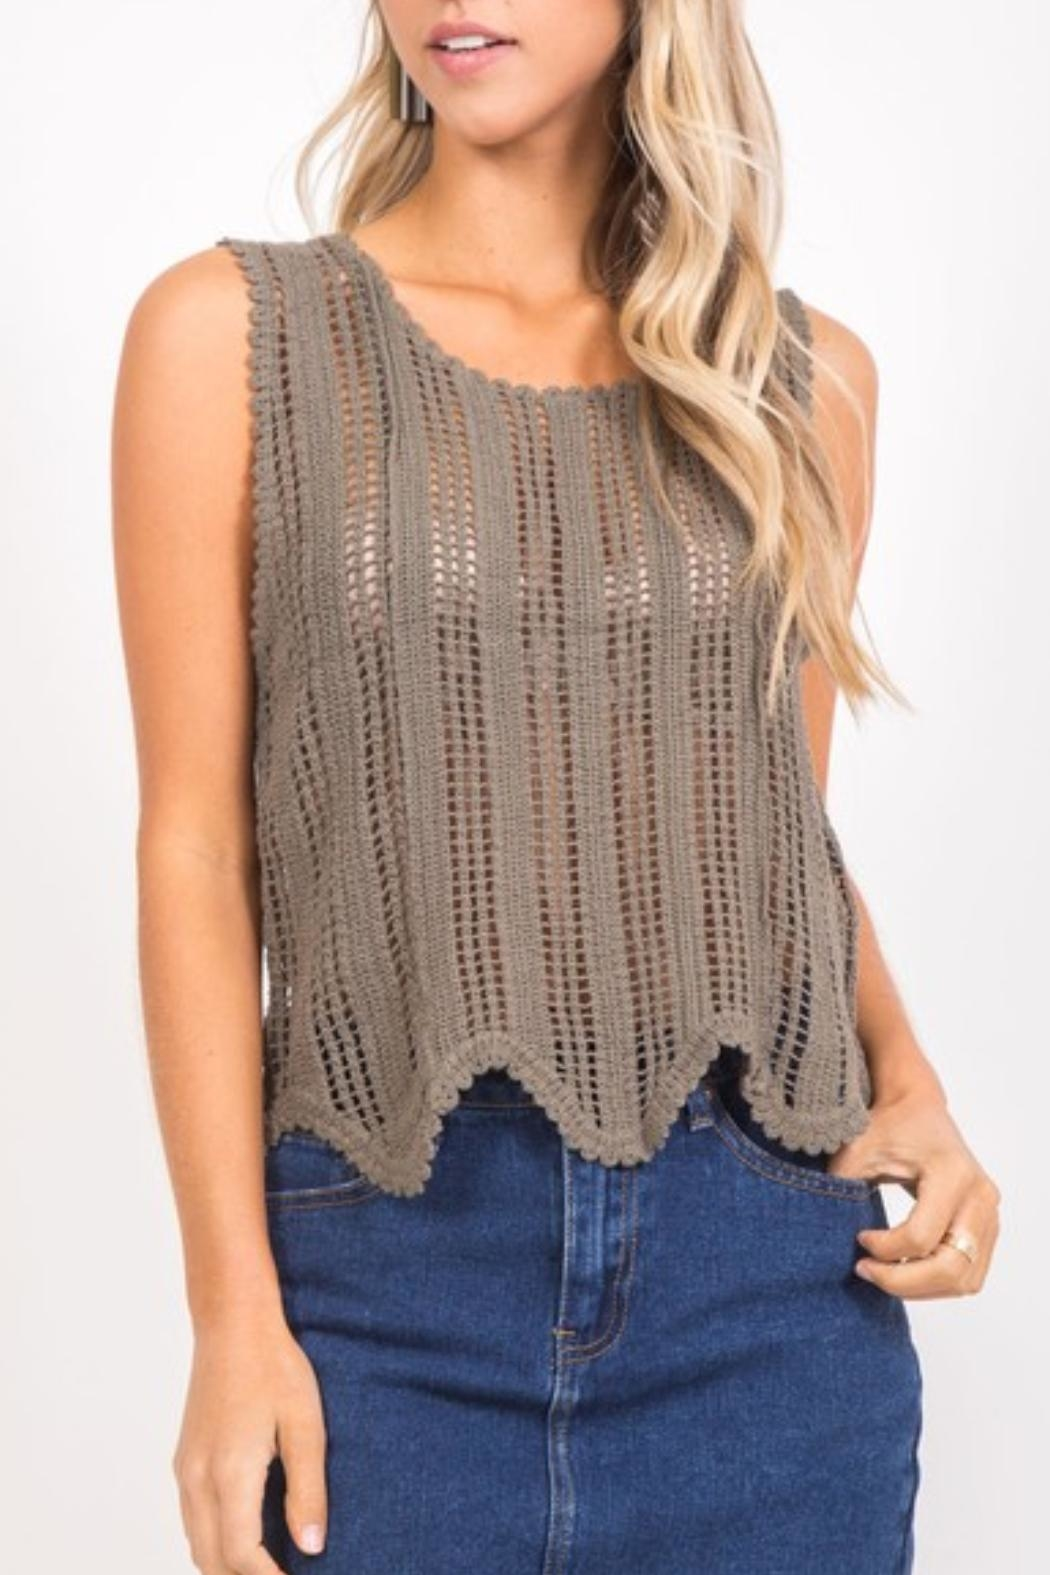 LoveRiche Olive Crochet Top - Main Image